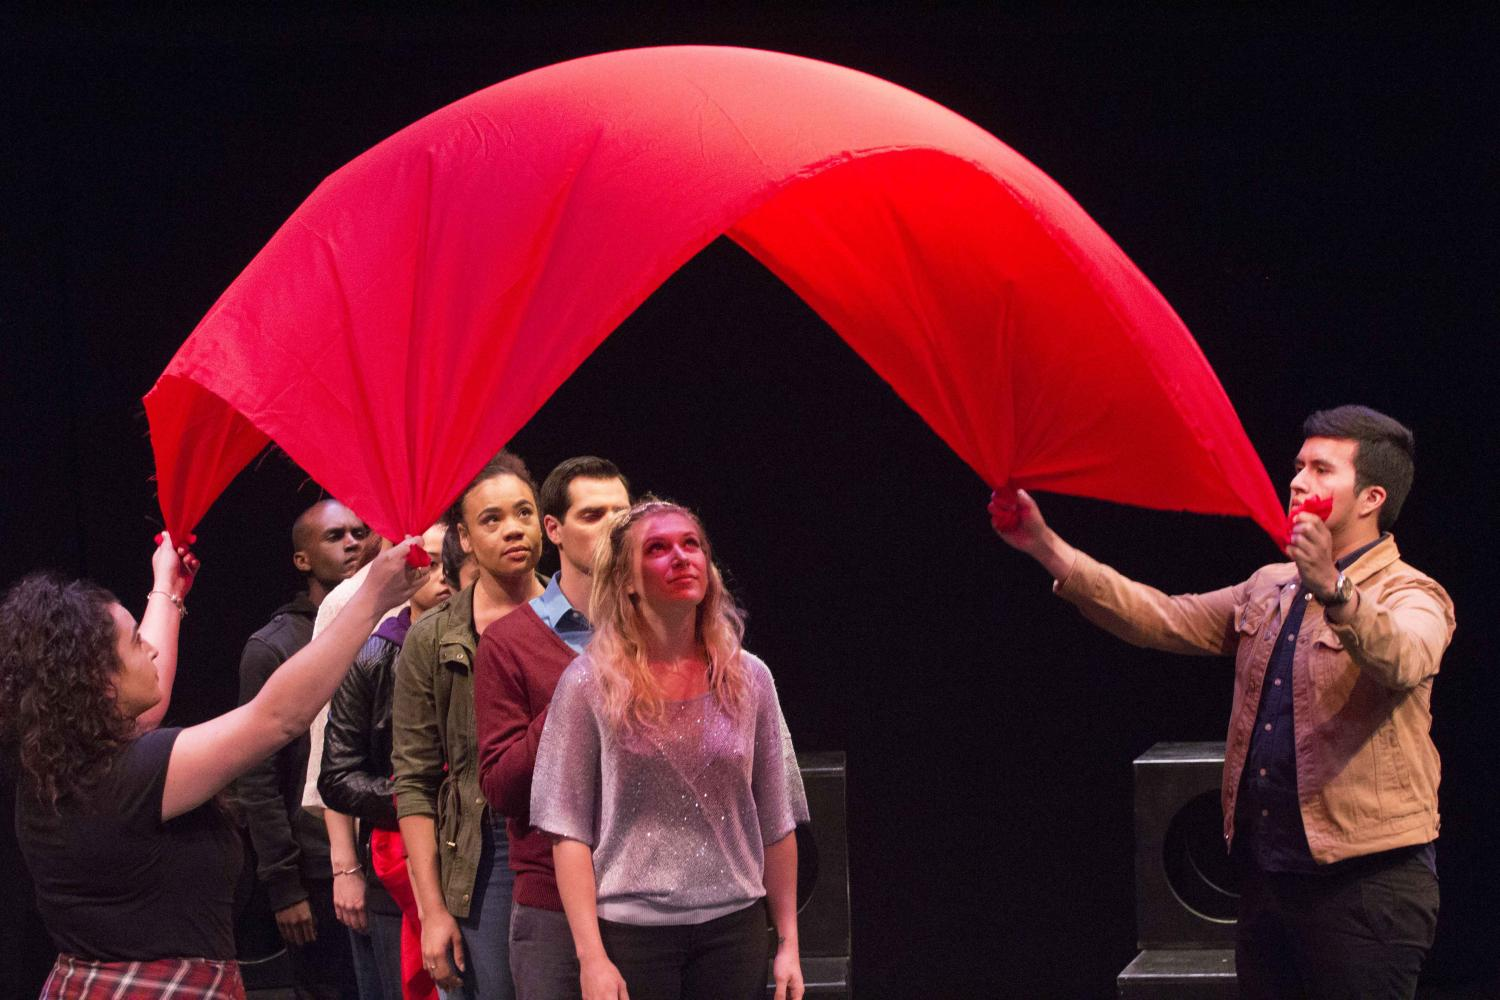 Voices of Hope, a play by Pamela Lassiter Cathey about sexual assault and its consequences for the victims. On Studio Stage Productions/Performances at Santa Monica College, in Santa Monica California. On Friday April 28, 2017. (Emeline Moquillon)